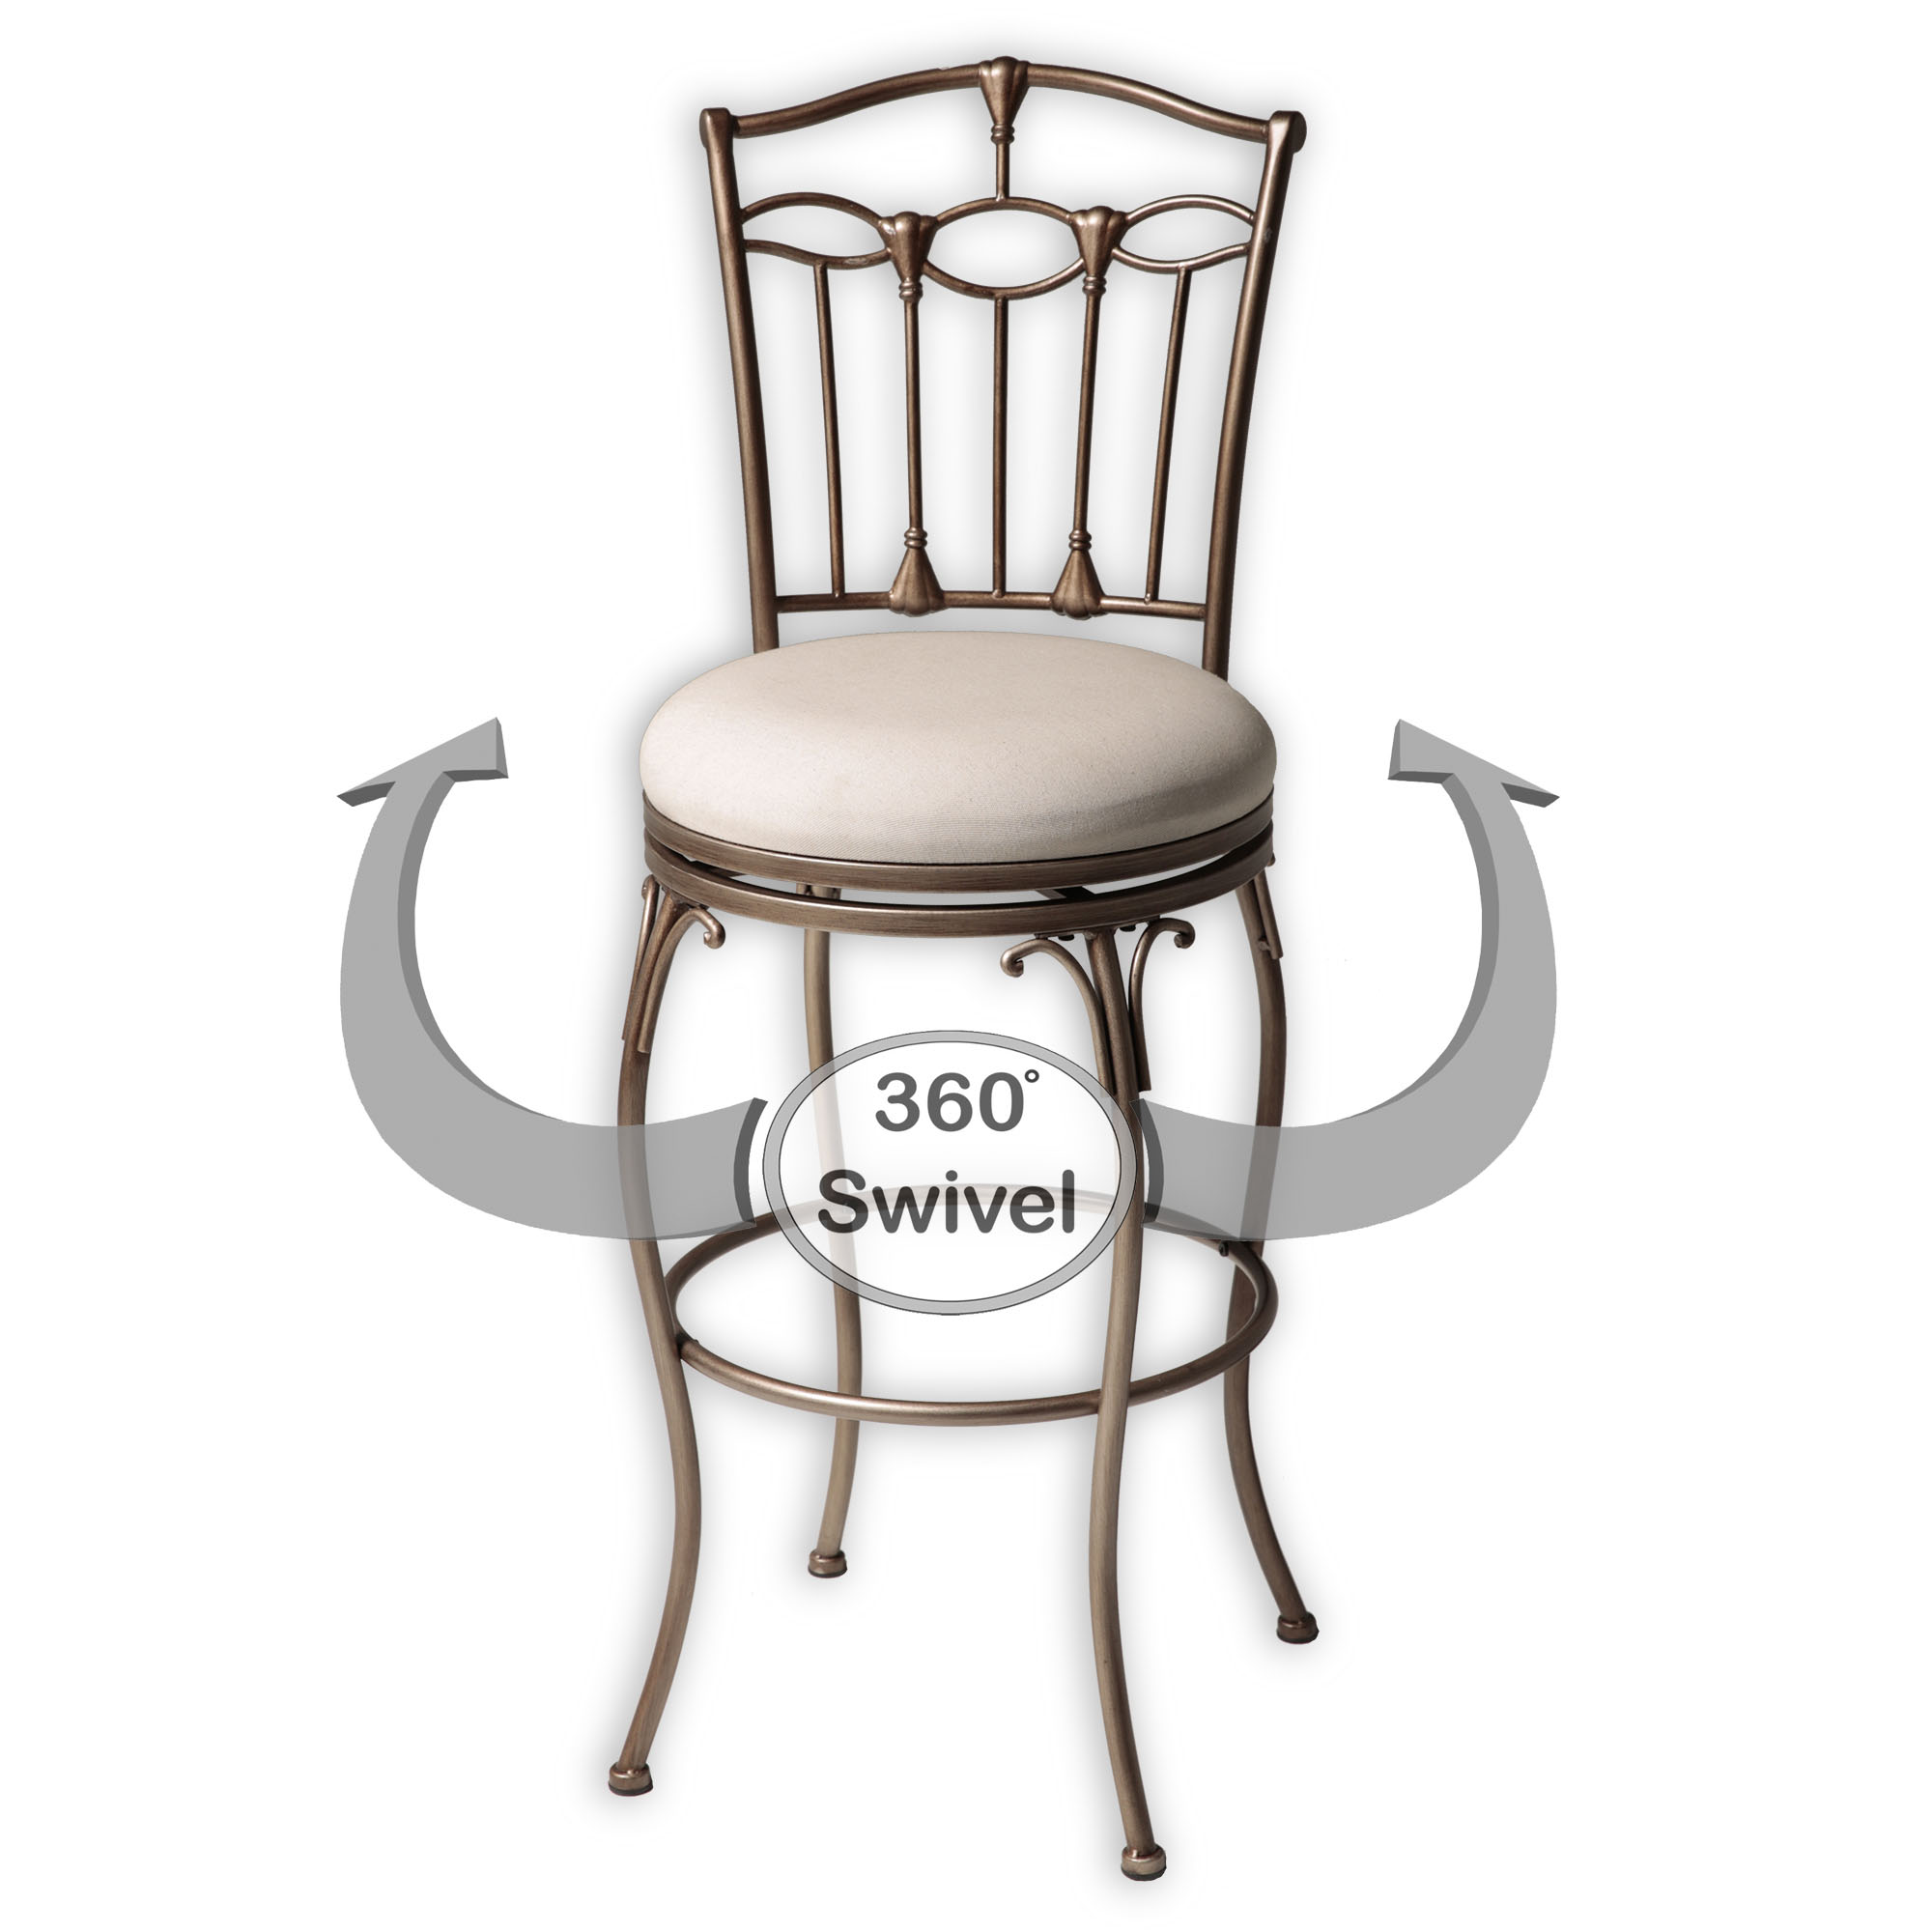 C1M070 In By Fashion Bed Group In Dickson, TN   Concord Metal Barstool With  Linen Upholstered Swivel Seat And Brushed Bronze Frame Finish, 30 Inch